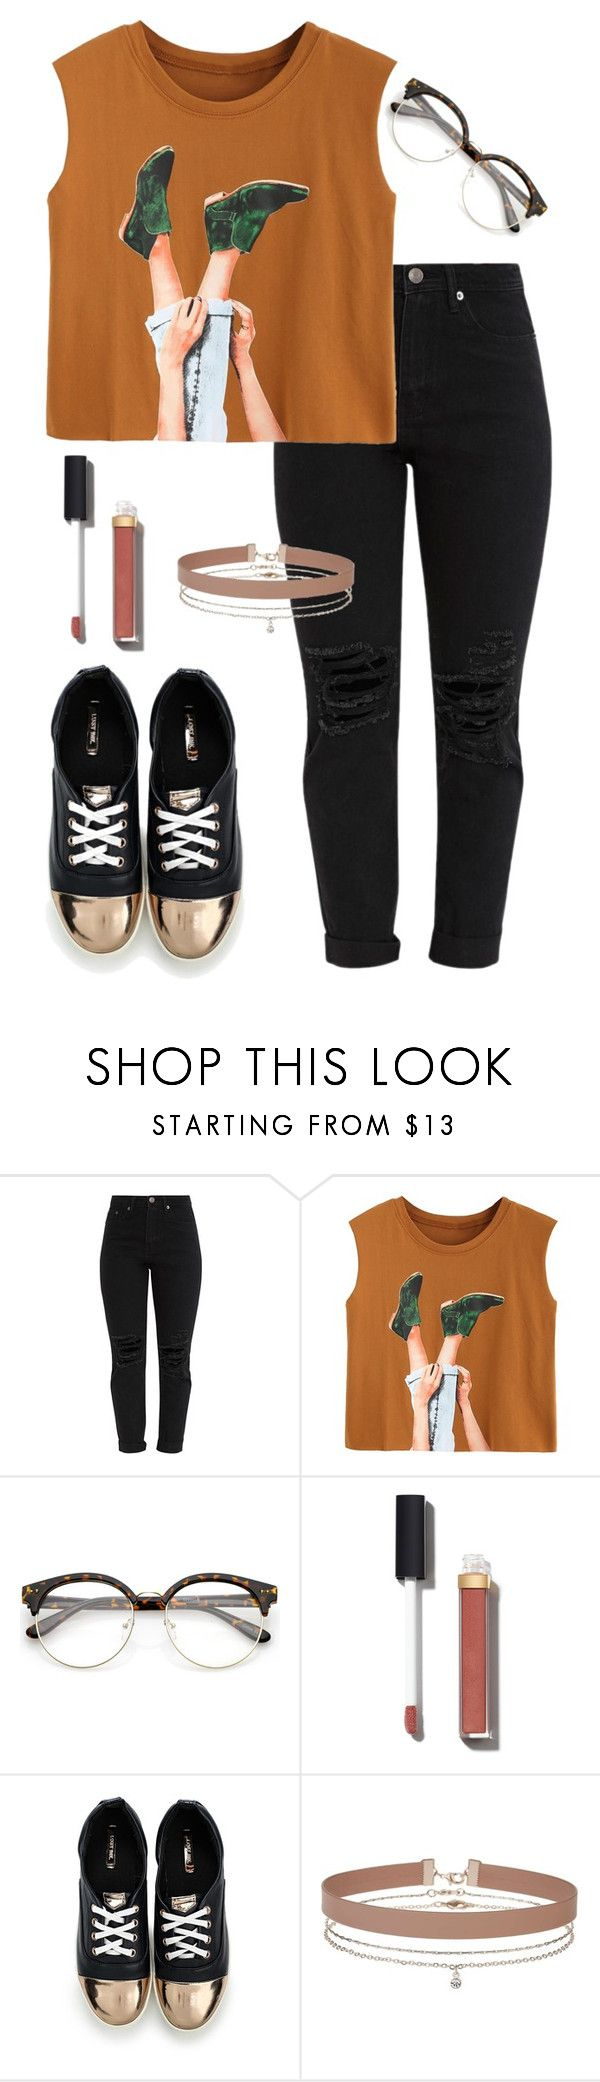 """Untitled #717"" by hey-there-its-kylah on Polyvore featuring Chanel and Miss Selfridge"